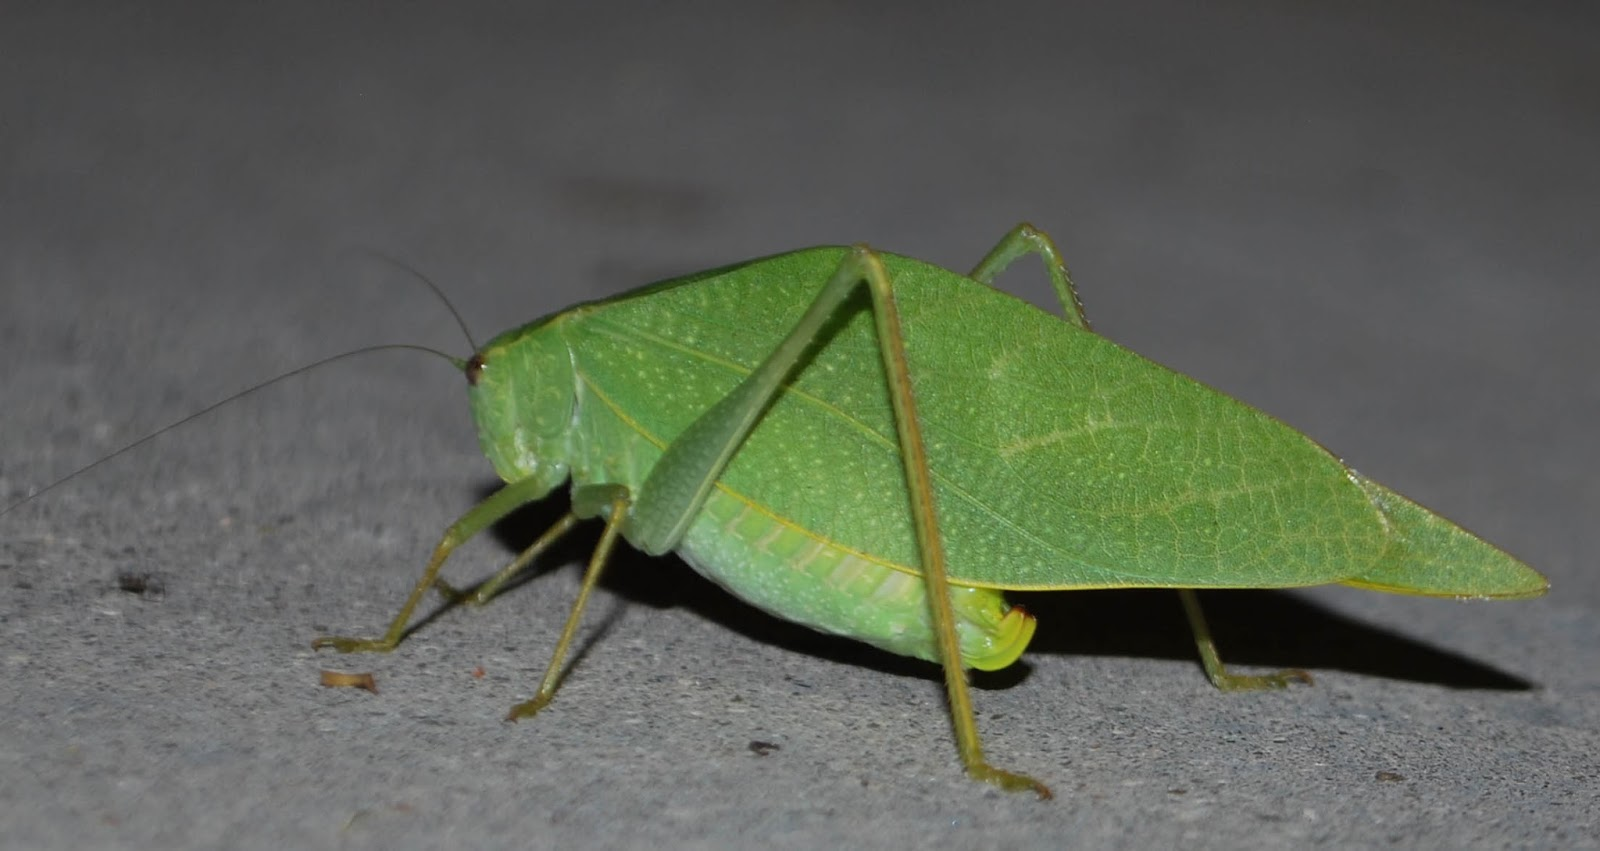 The Scratching Post: Green Leaf-shaped Grasshopper